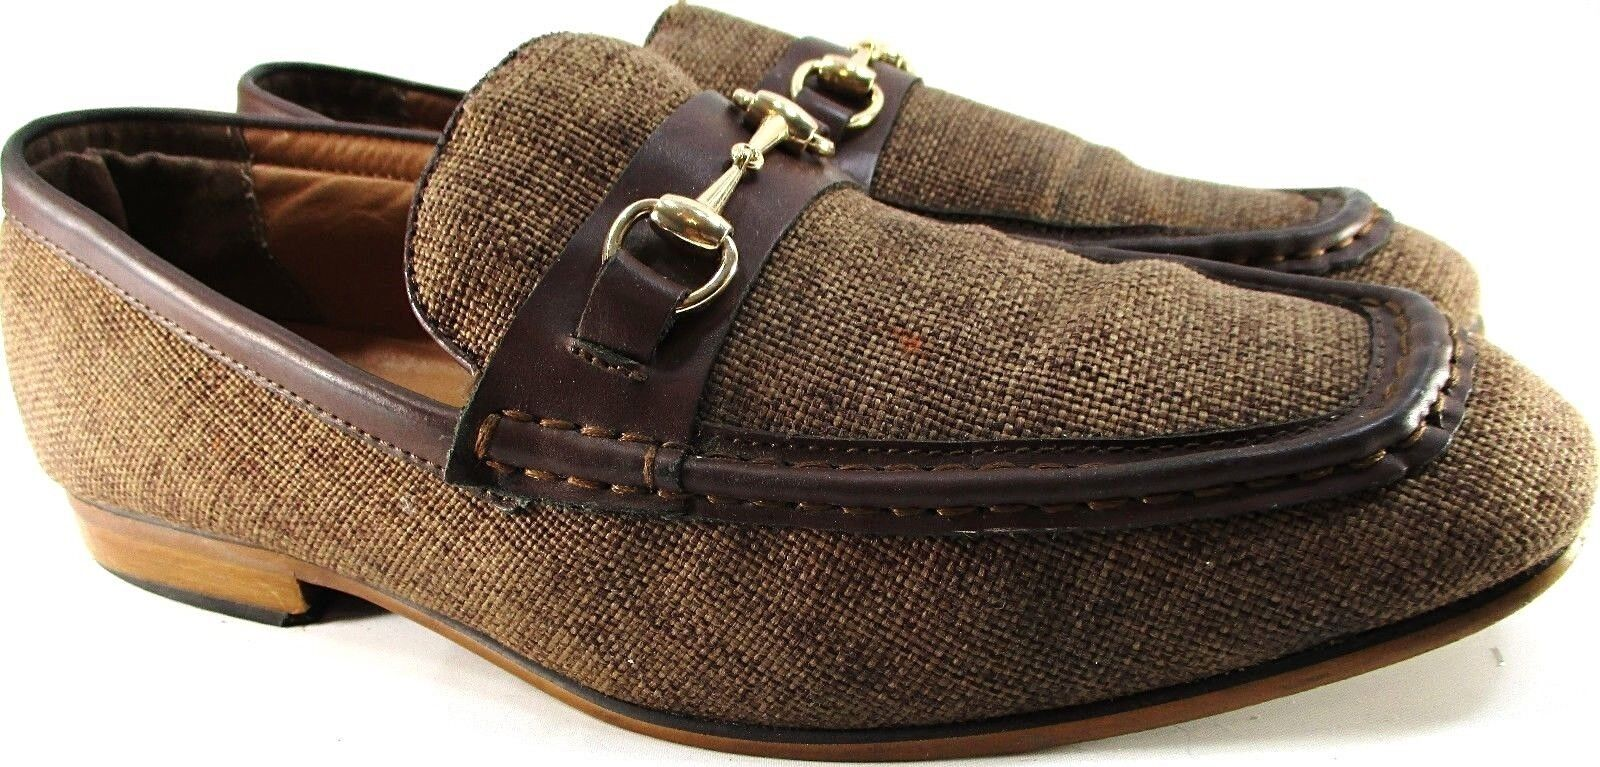 La Milano Men Loafer shoes Size 11 Brown Tweed Leather Trim Style A1870